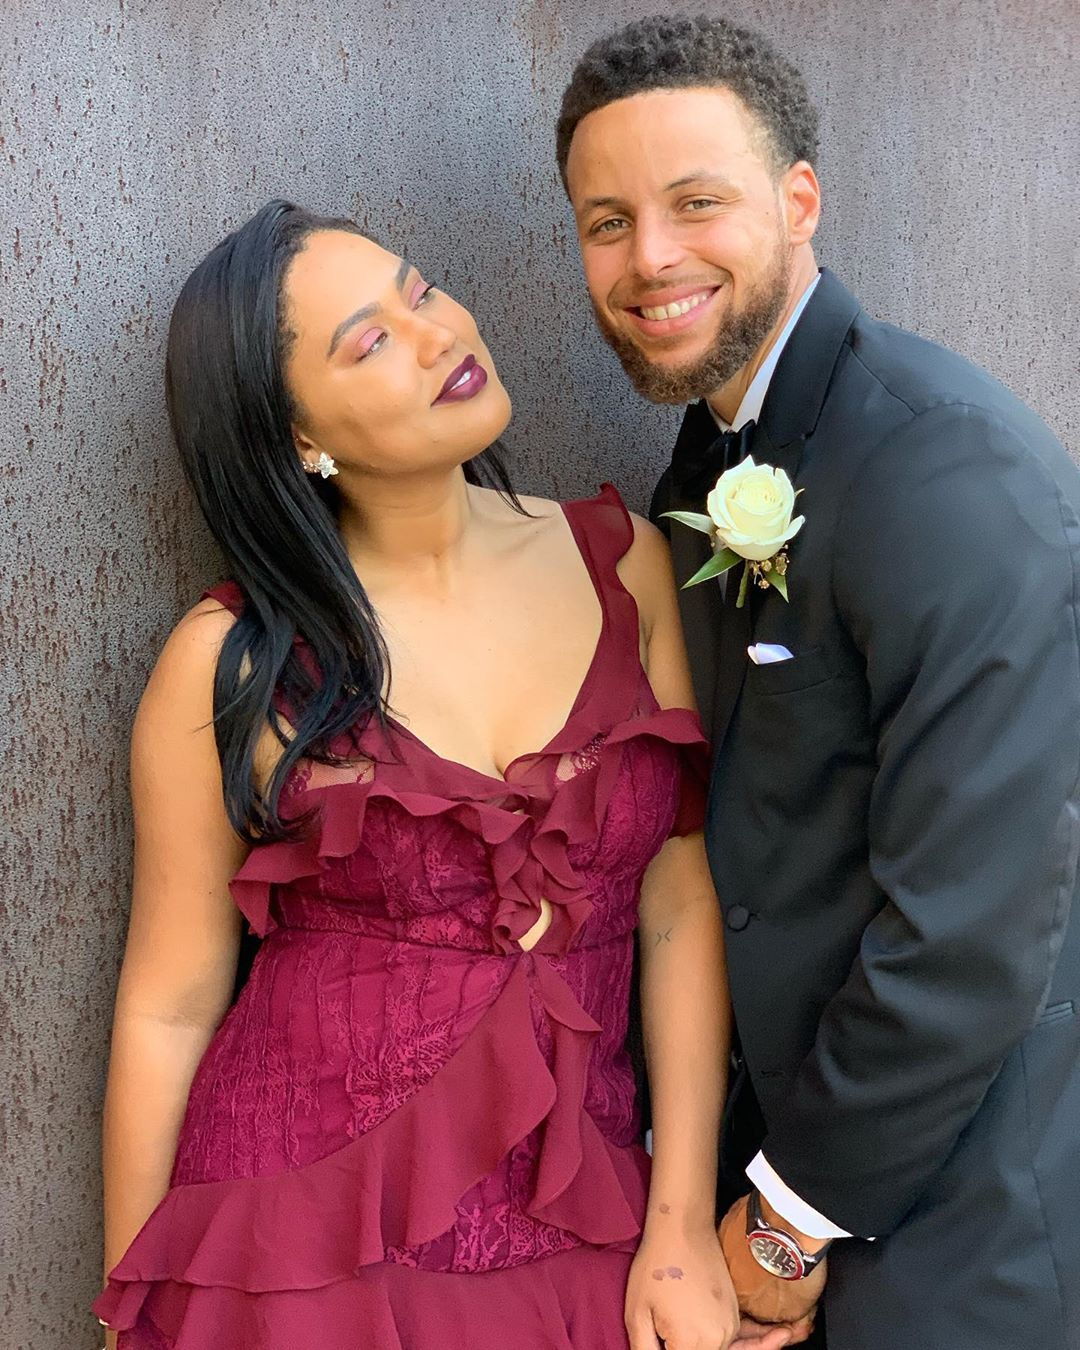 Wardell Curry On Instagram Wedding Szn Alert Ayesha And Steph Curry Cute Couples Ayesha Curry